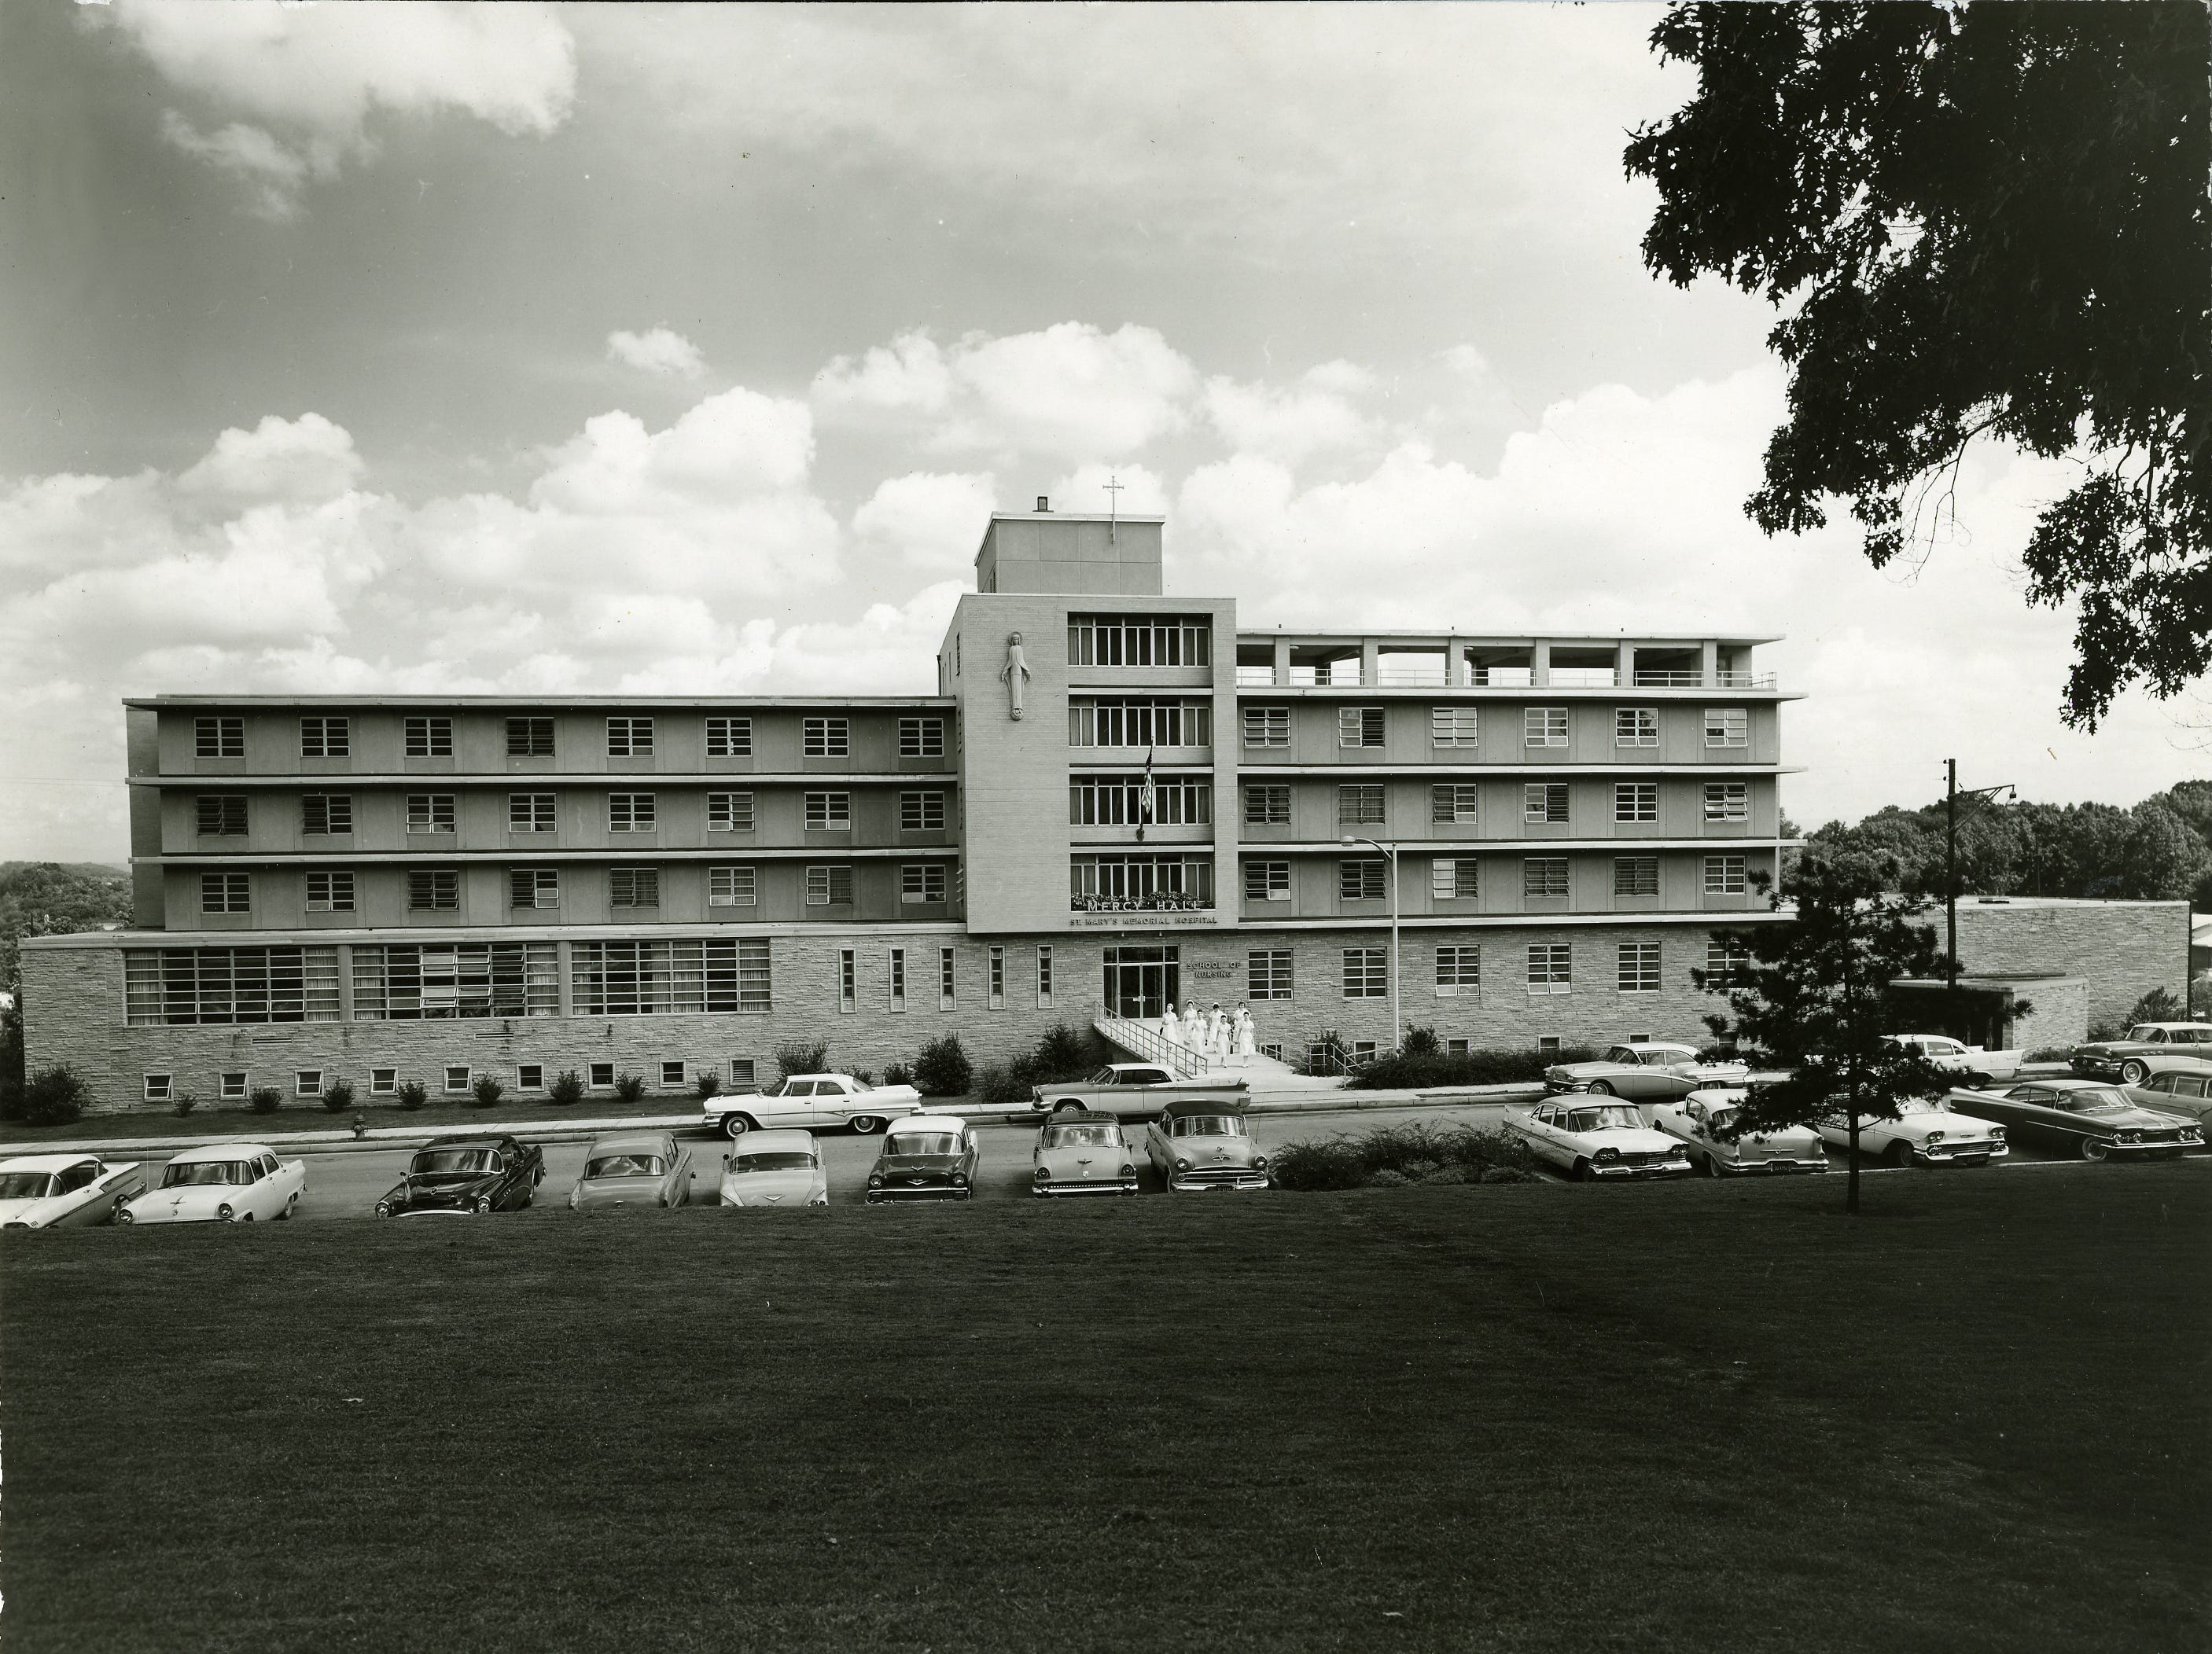 Mercy Hall was the nursing school building on the St. Mary's hospital campus, It was built in 1957, and it included dormitories for students and the sisters, offices, classrooms, a library and a chapel. It was later renamed Celeste Hall.